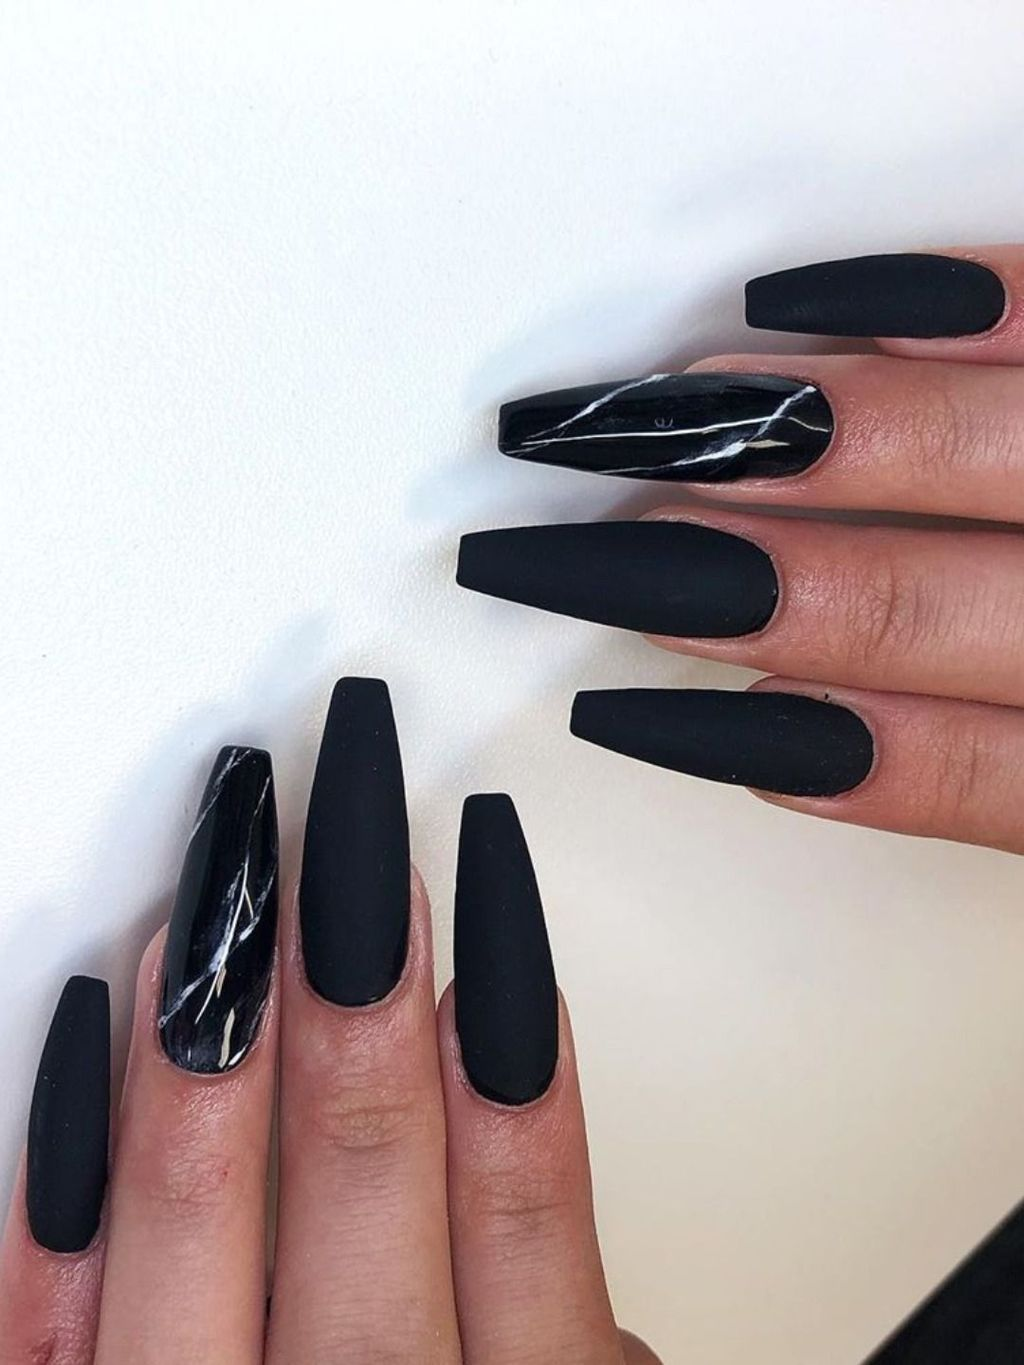 40 Stunning Matte Black Nail Ideas For You To Try Asap In 2020 Long Acrylic Nails Black Marble Nails Black Acrylic Nails